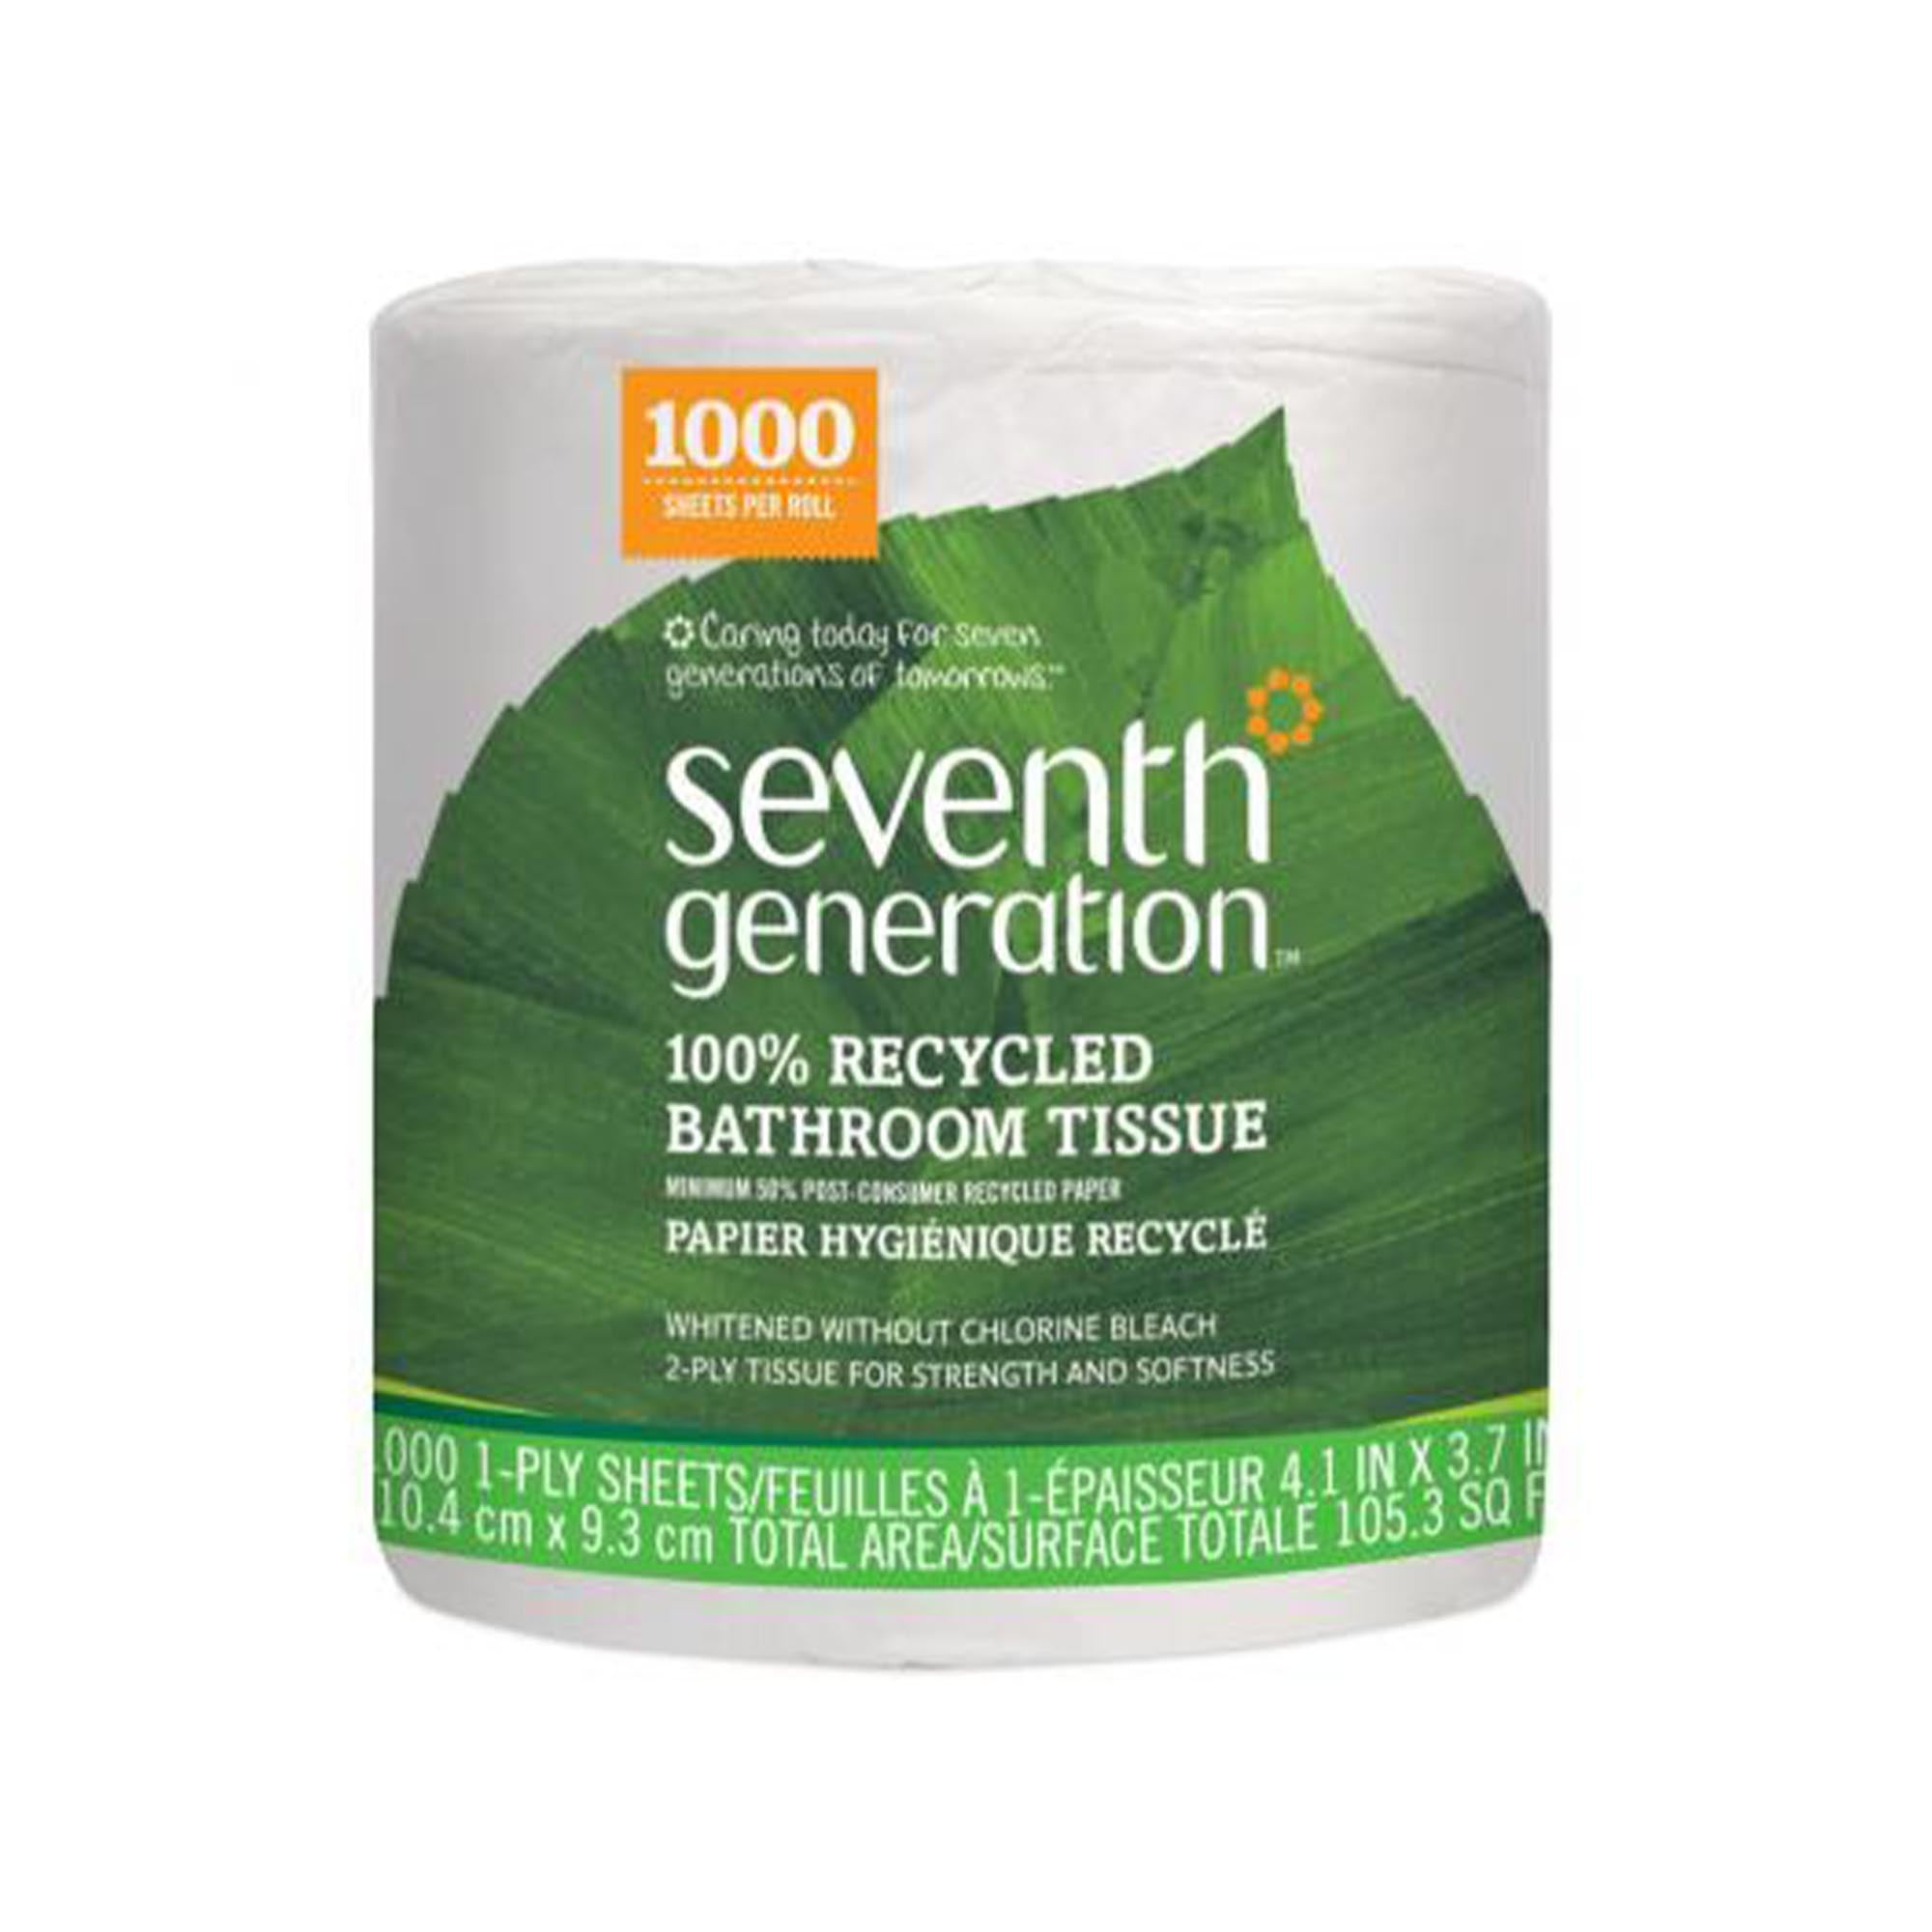 toilet paper, bathroom tissue, 100% recycled, 1000 sheets per roll, made in usa by Seventh Generation